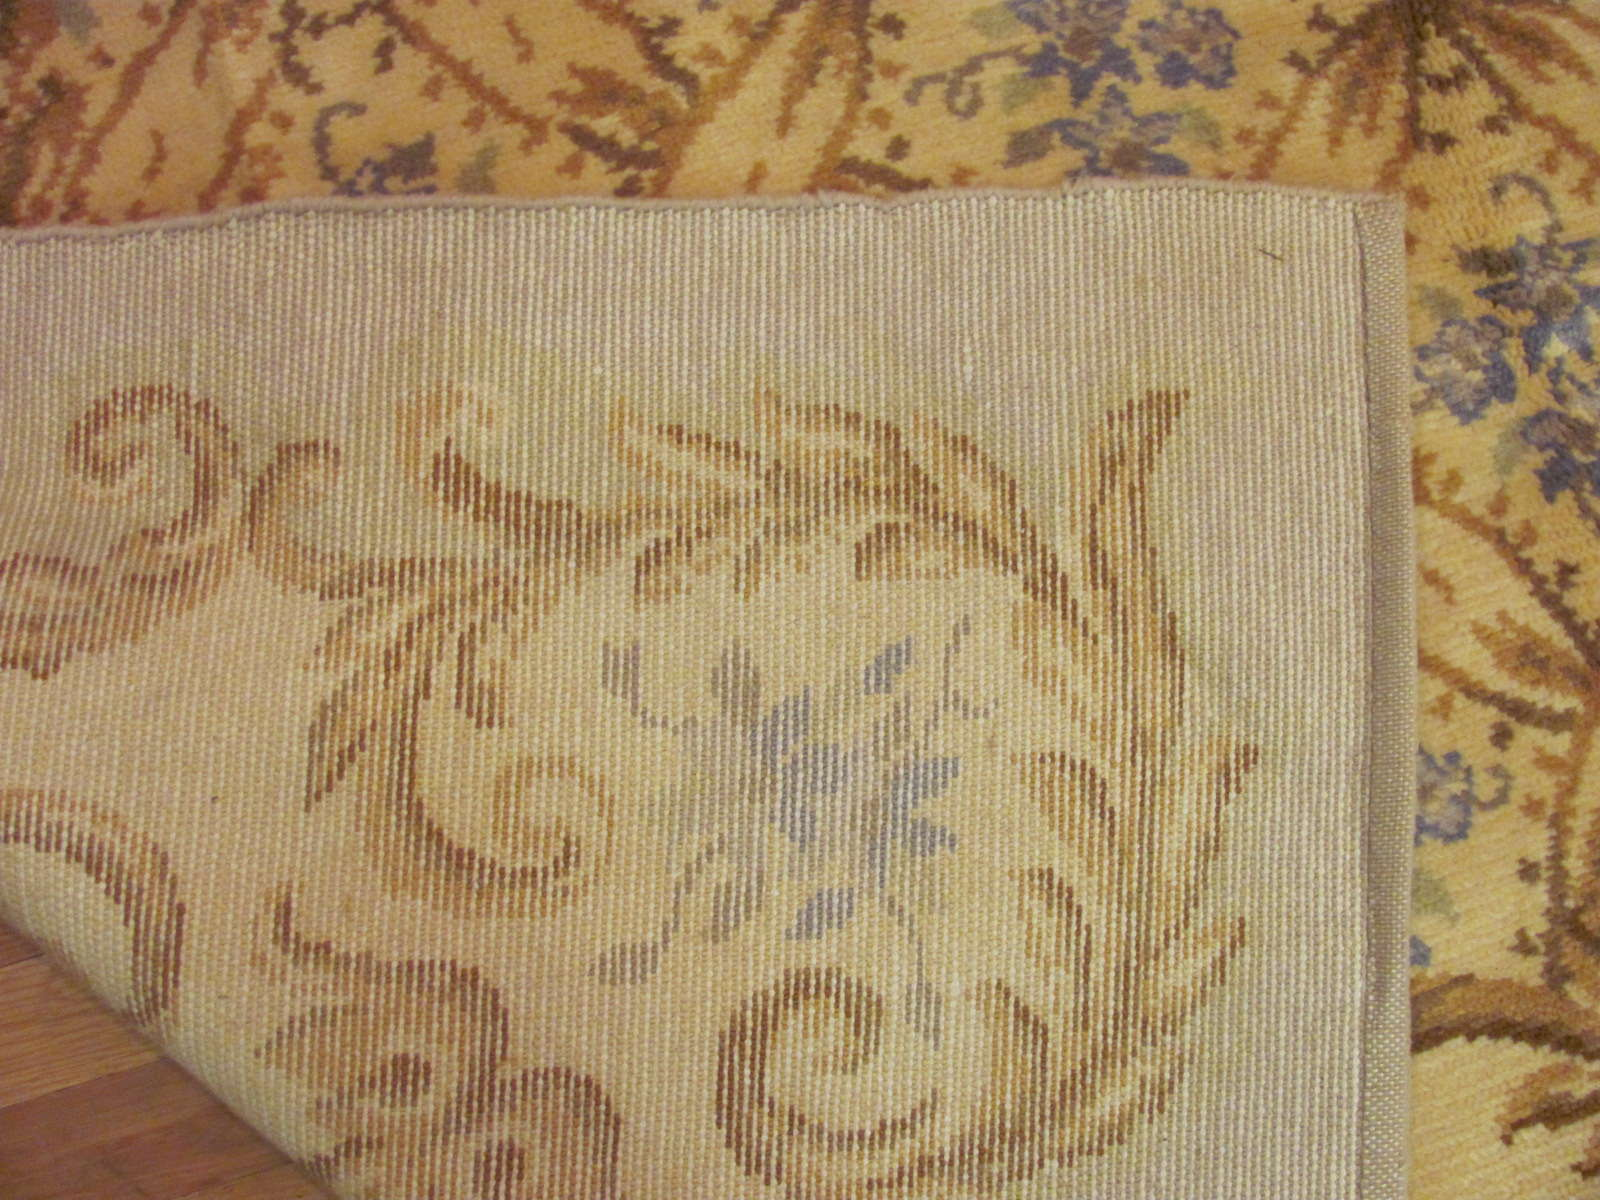 24489 Spanish carpet 7 x 9,2 -3